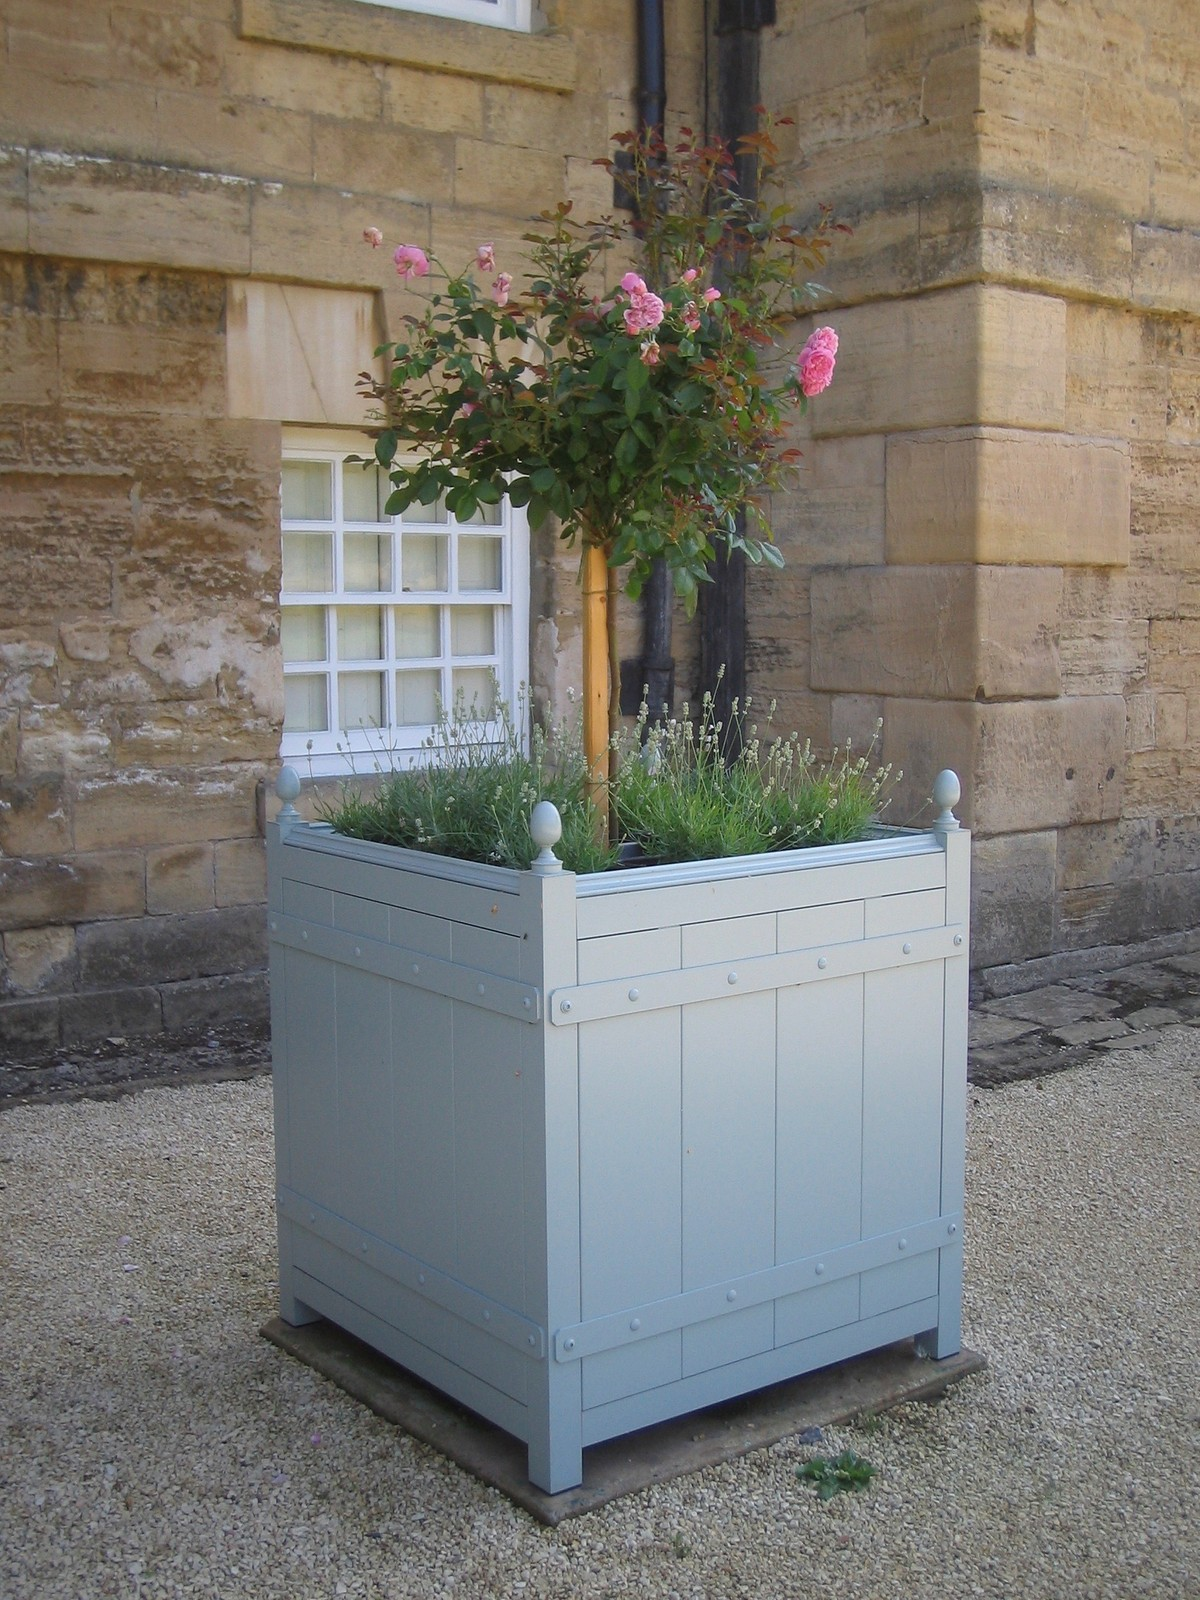 Bespoke No.9 Versailles planter with detachable panel, 100% aluminium body, stainless steel fixings, brass finials